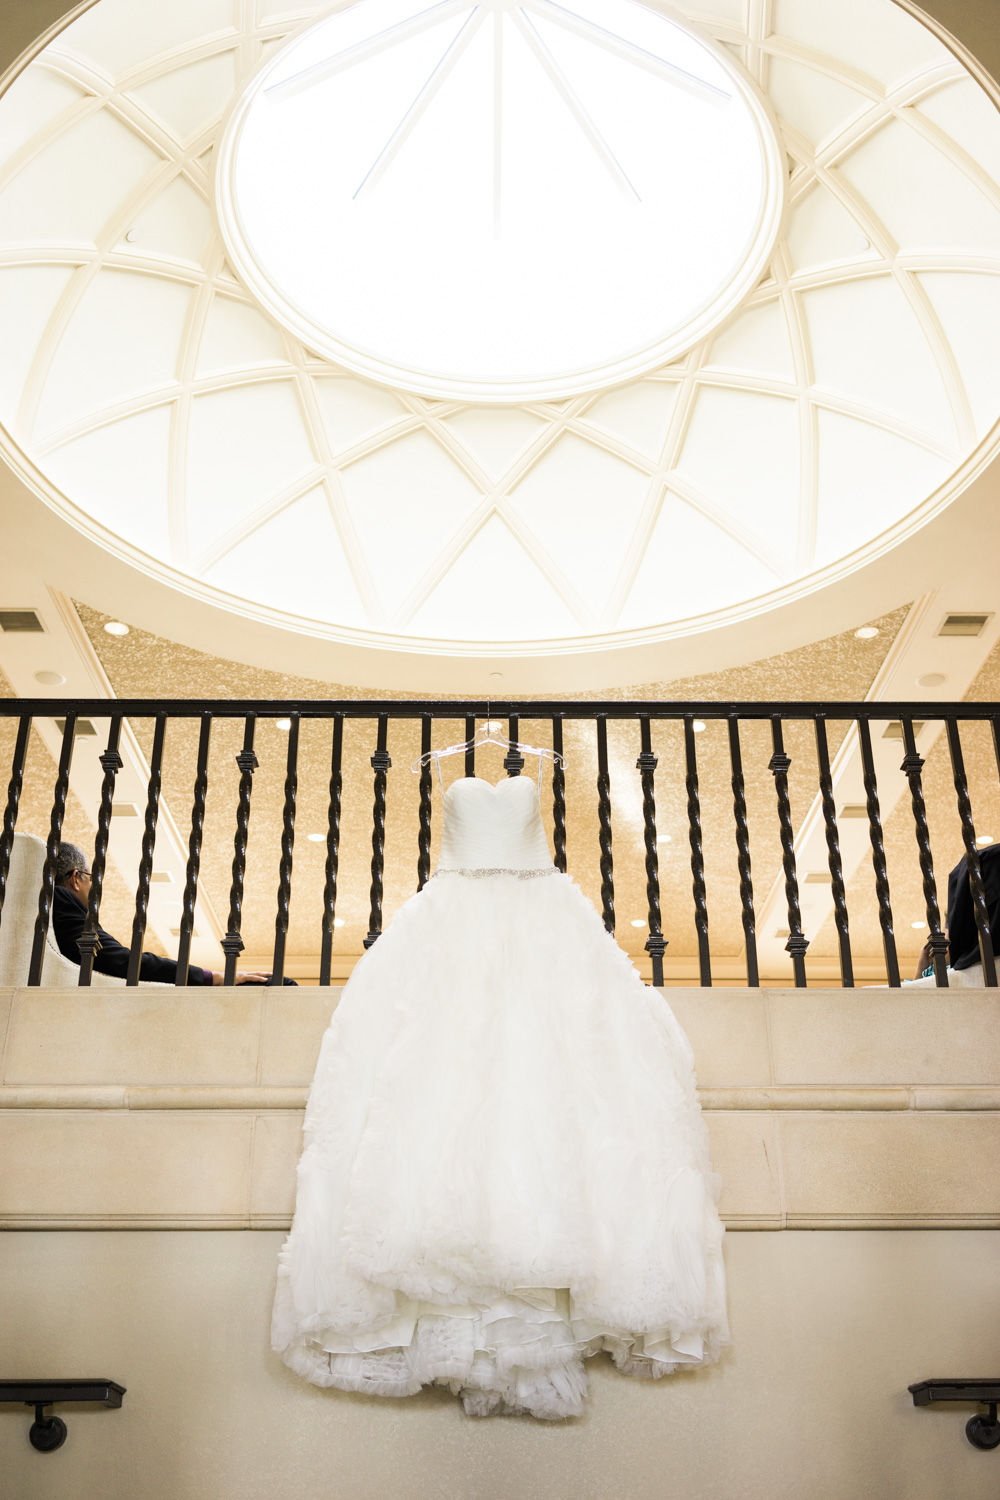 The wedding gown hanging from top of the stairs at the Ruby hill club.